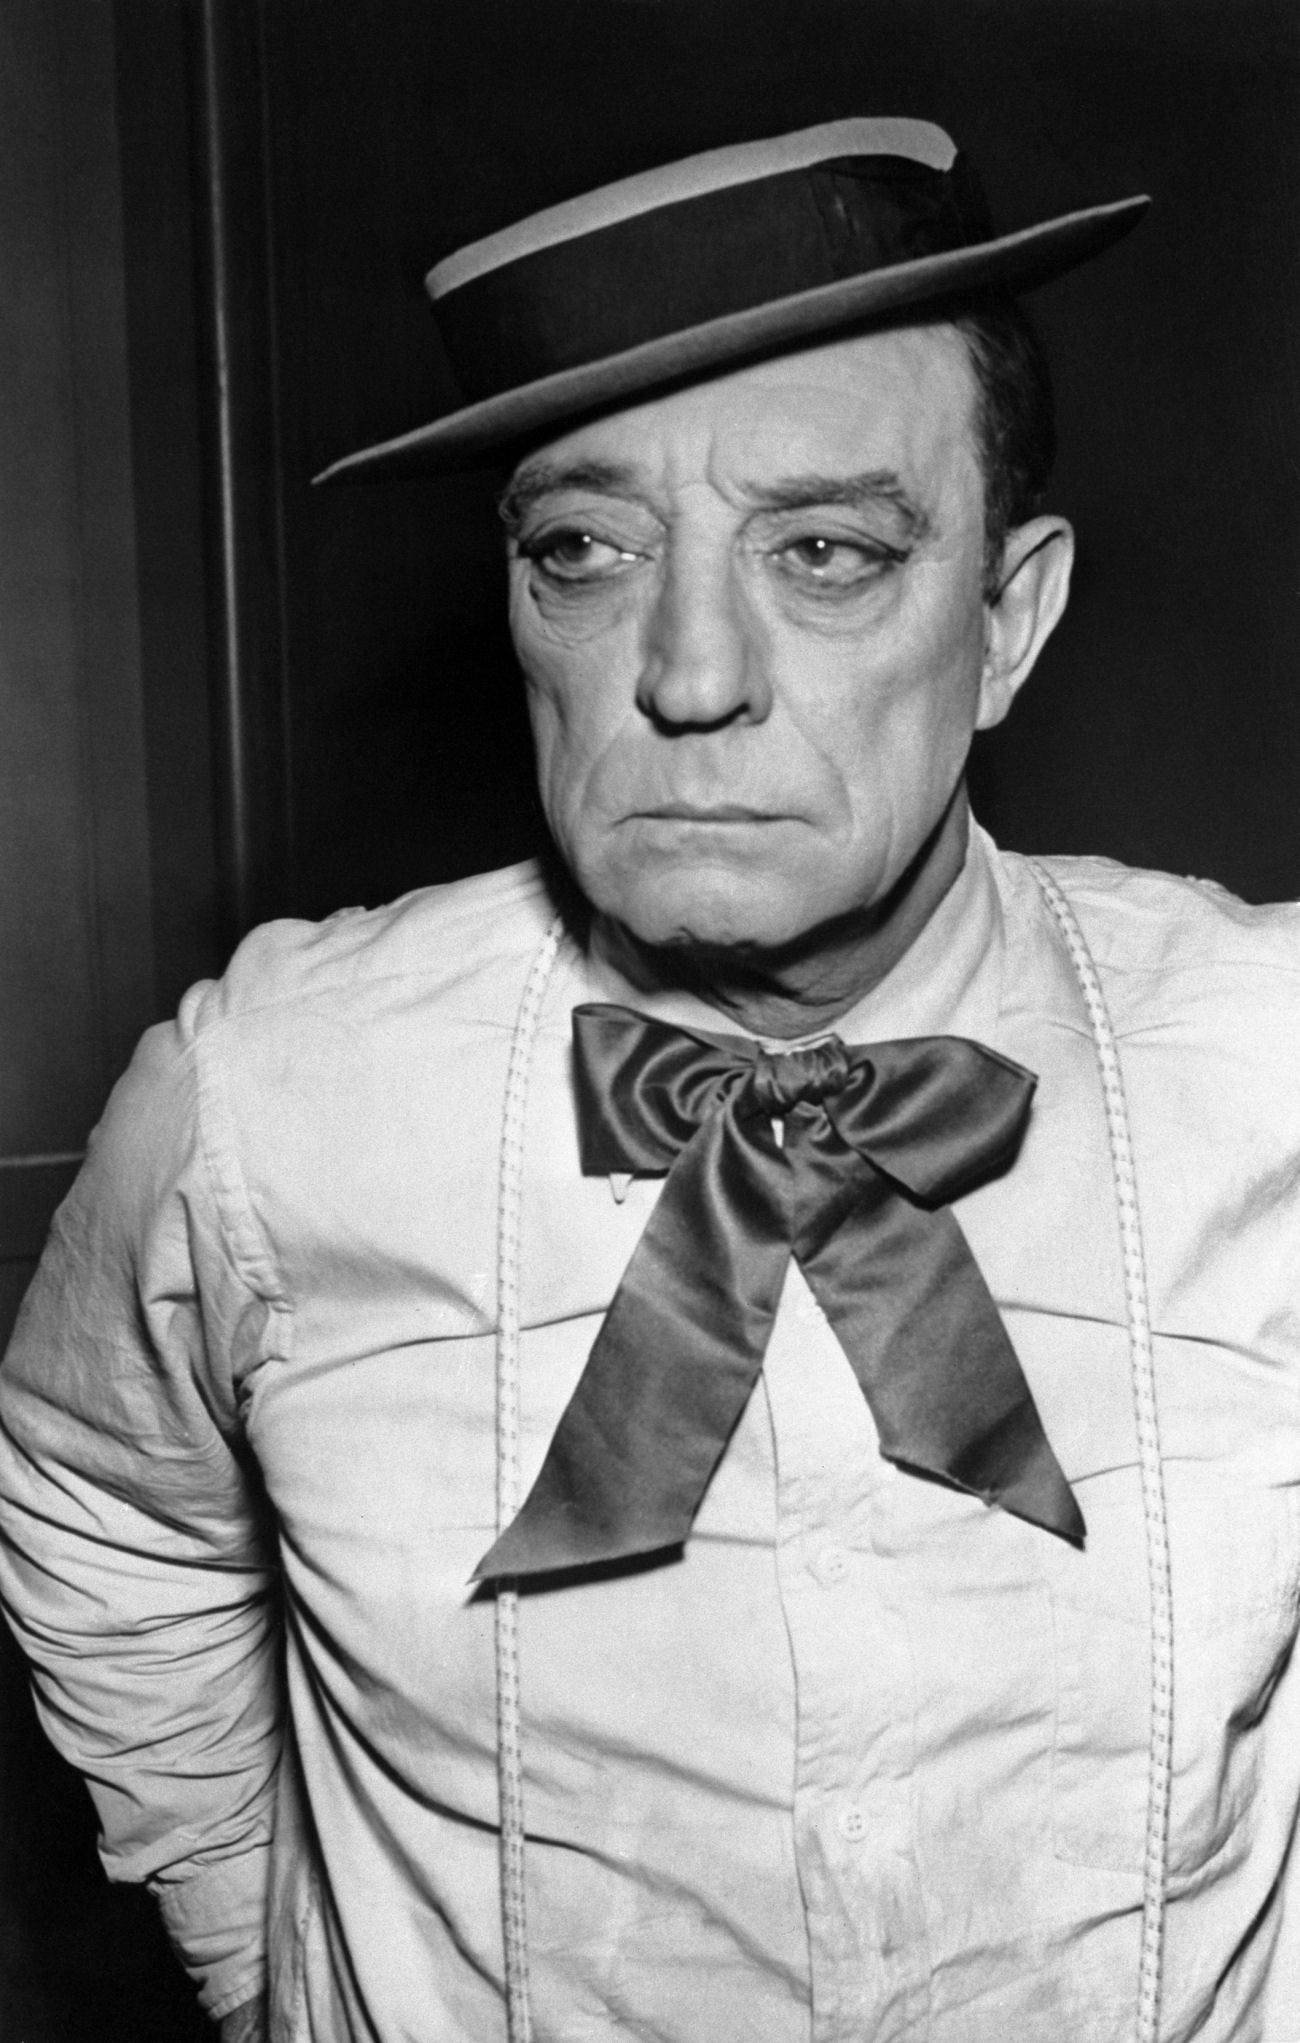 buster keaton silent movies photo 13813147 fanpop